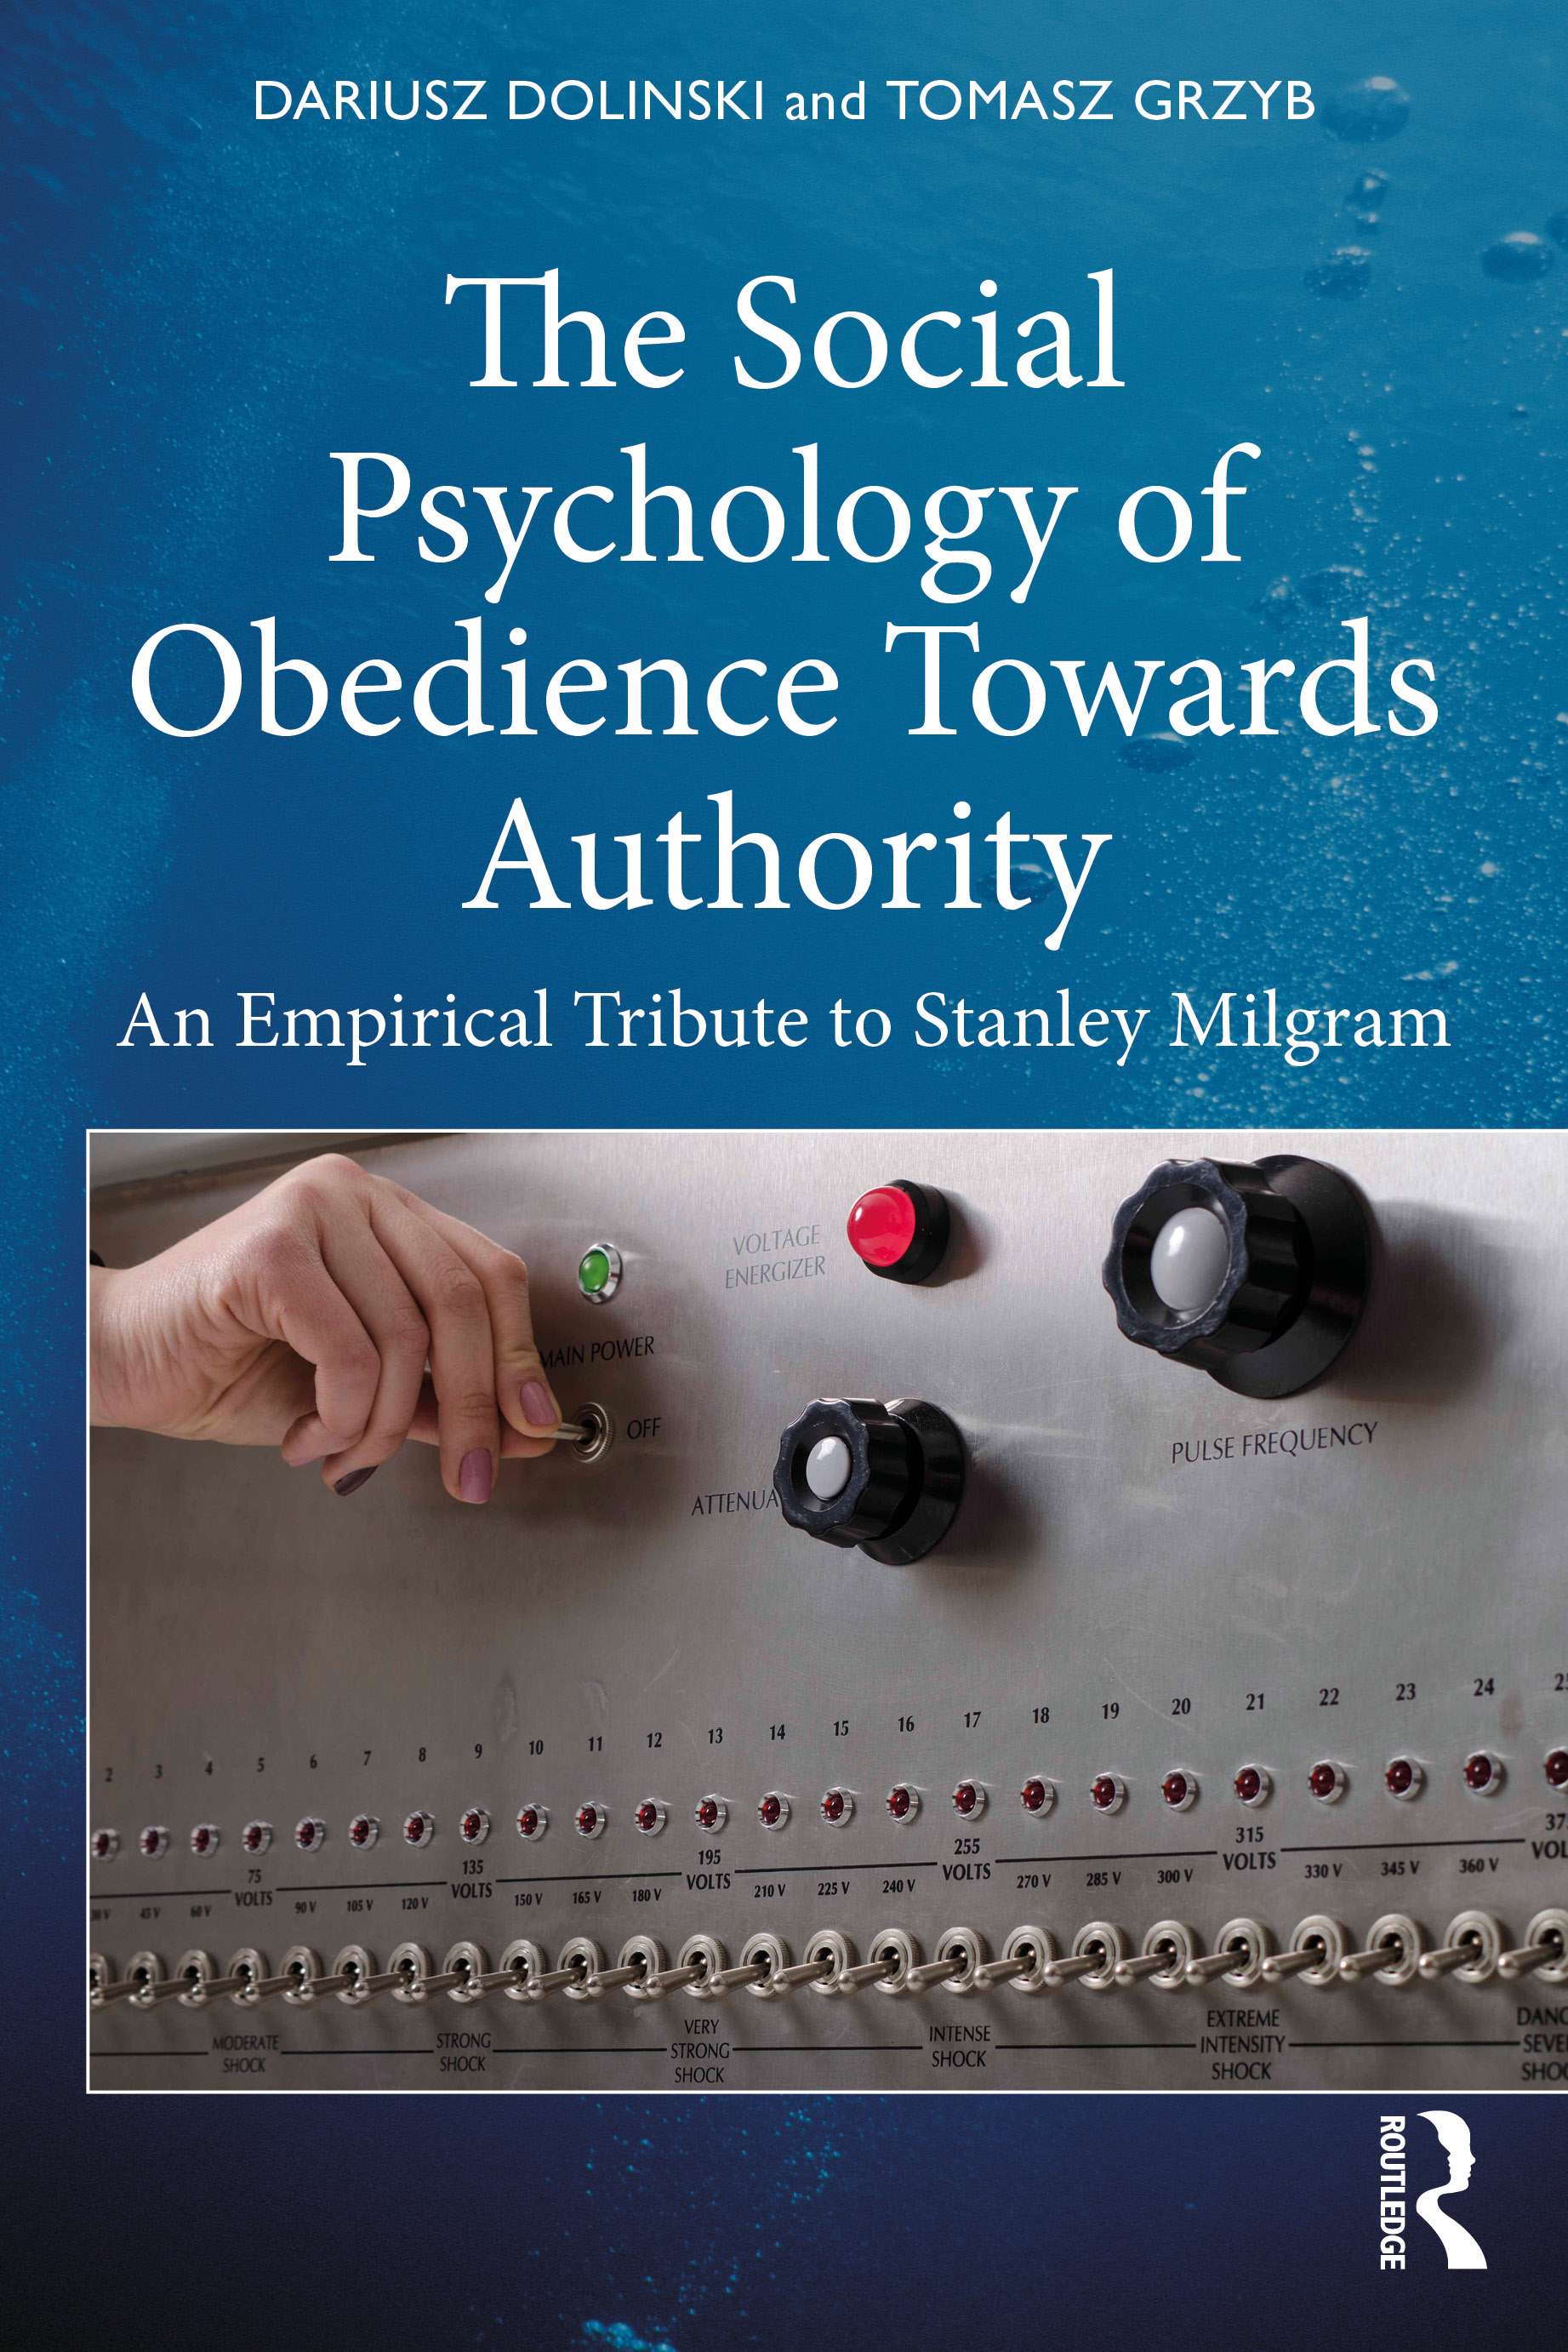 The Social Psychology of Obedience Towards Authority